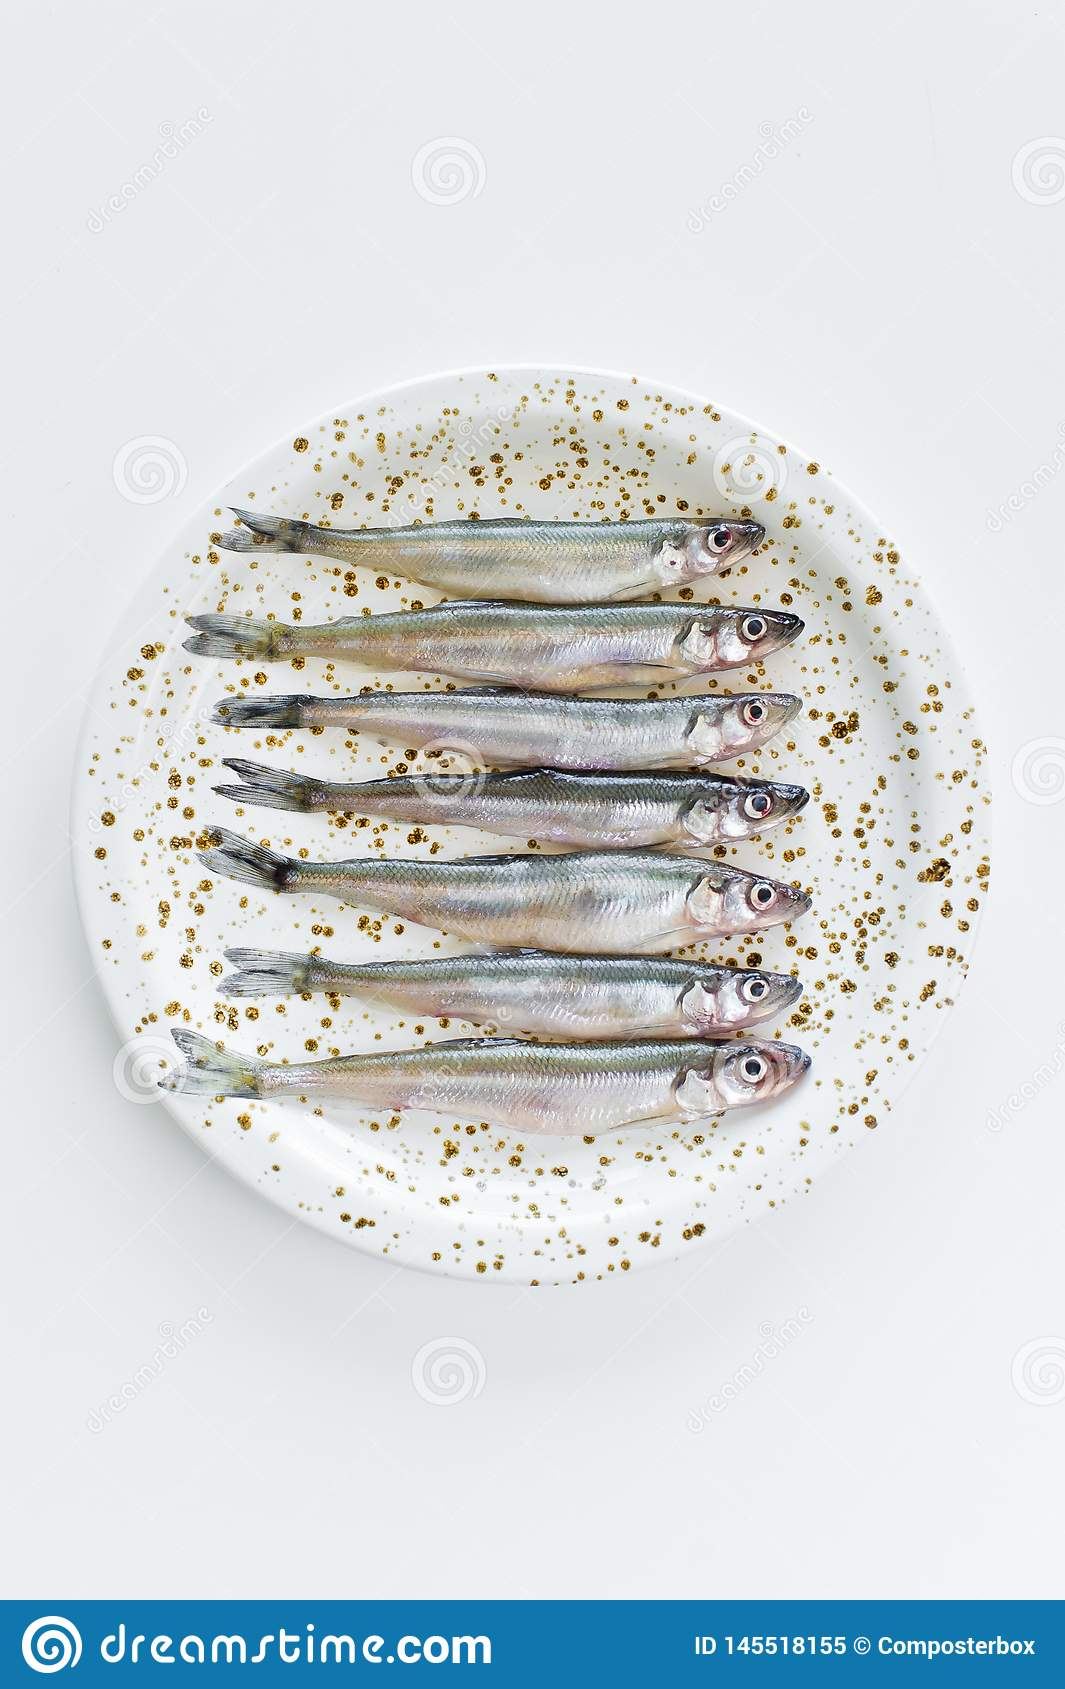 Raw mackerel on a plate. White background, top view, space for text.